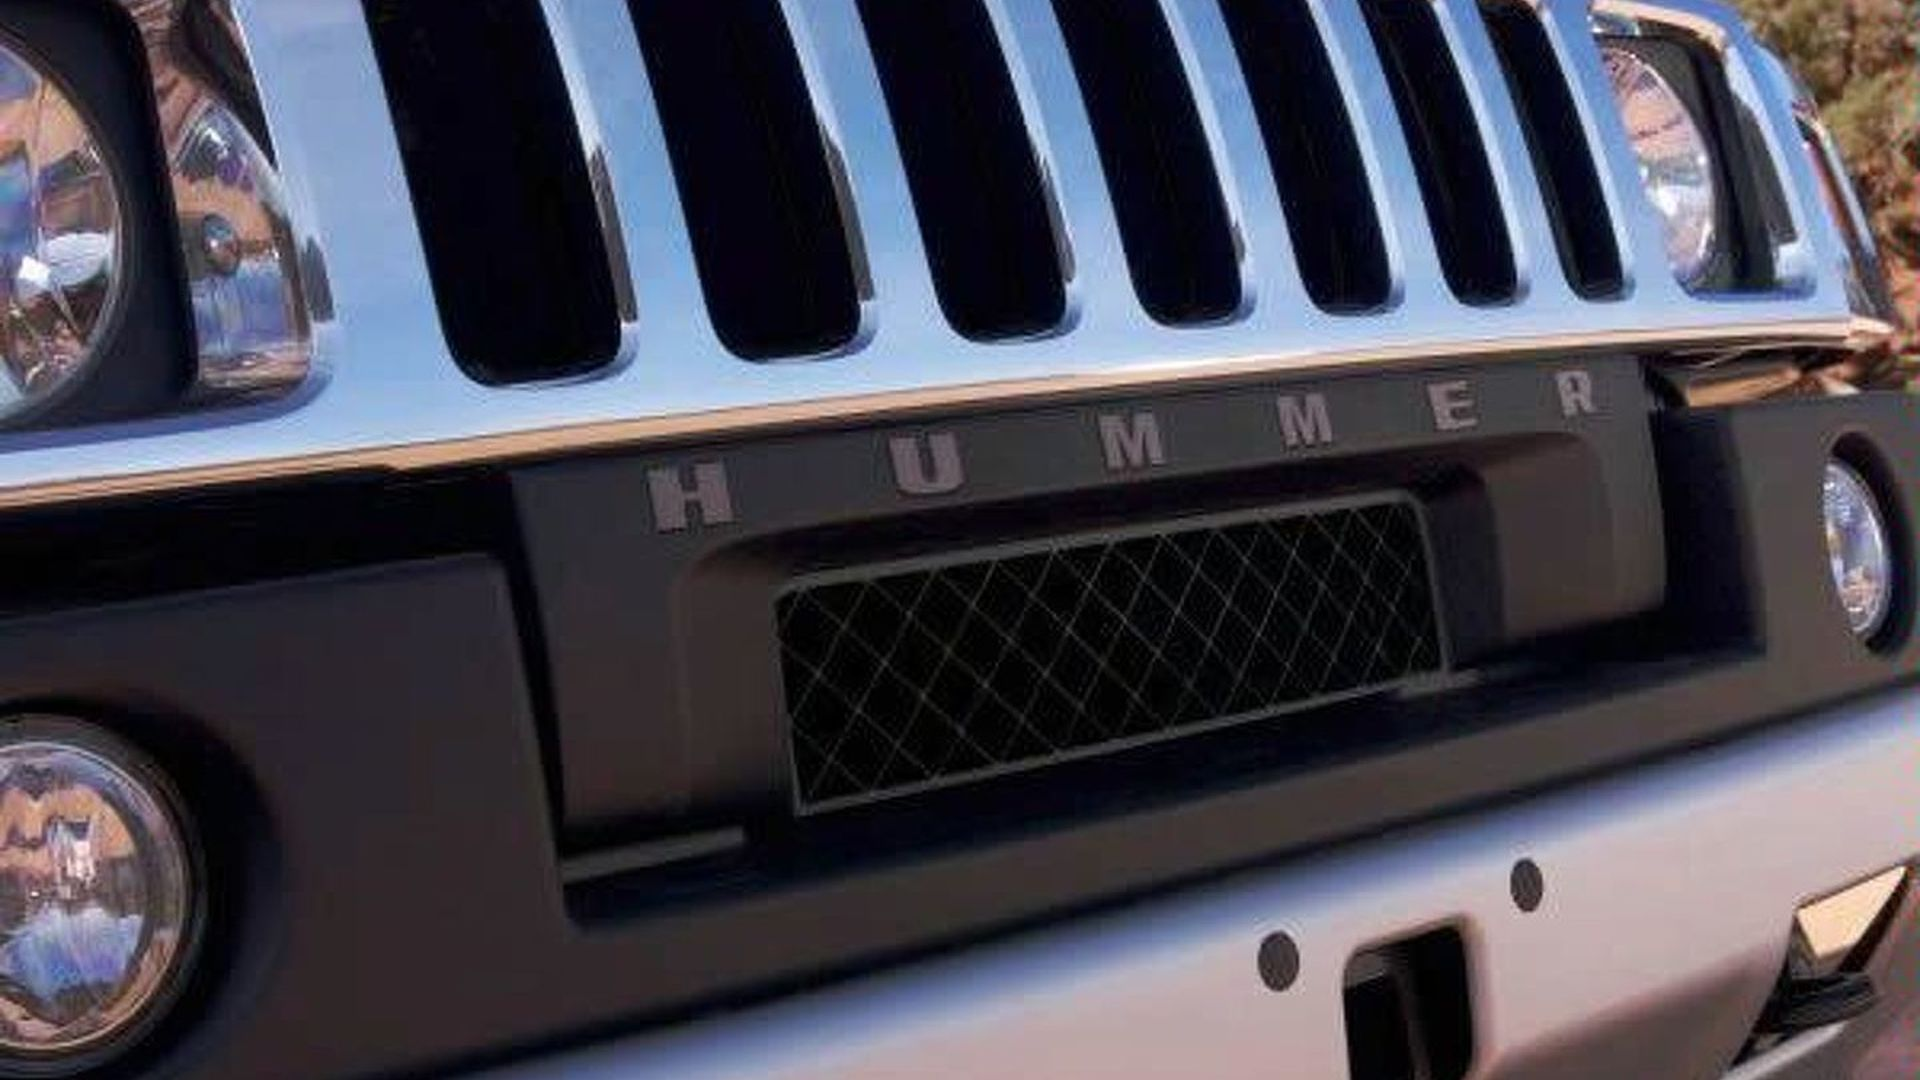 GM Announce Preliminary Agreement To Sell HUMMER to Mystery Buyer